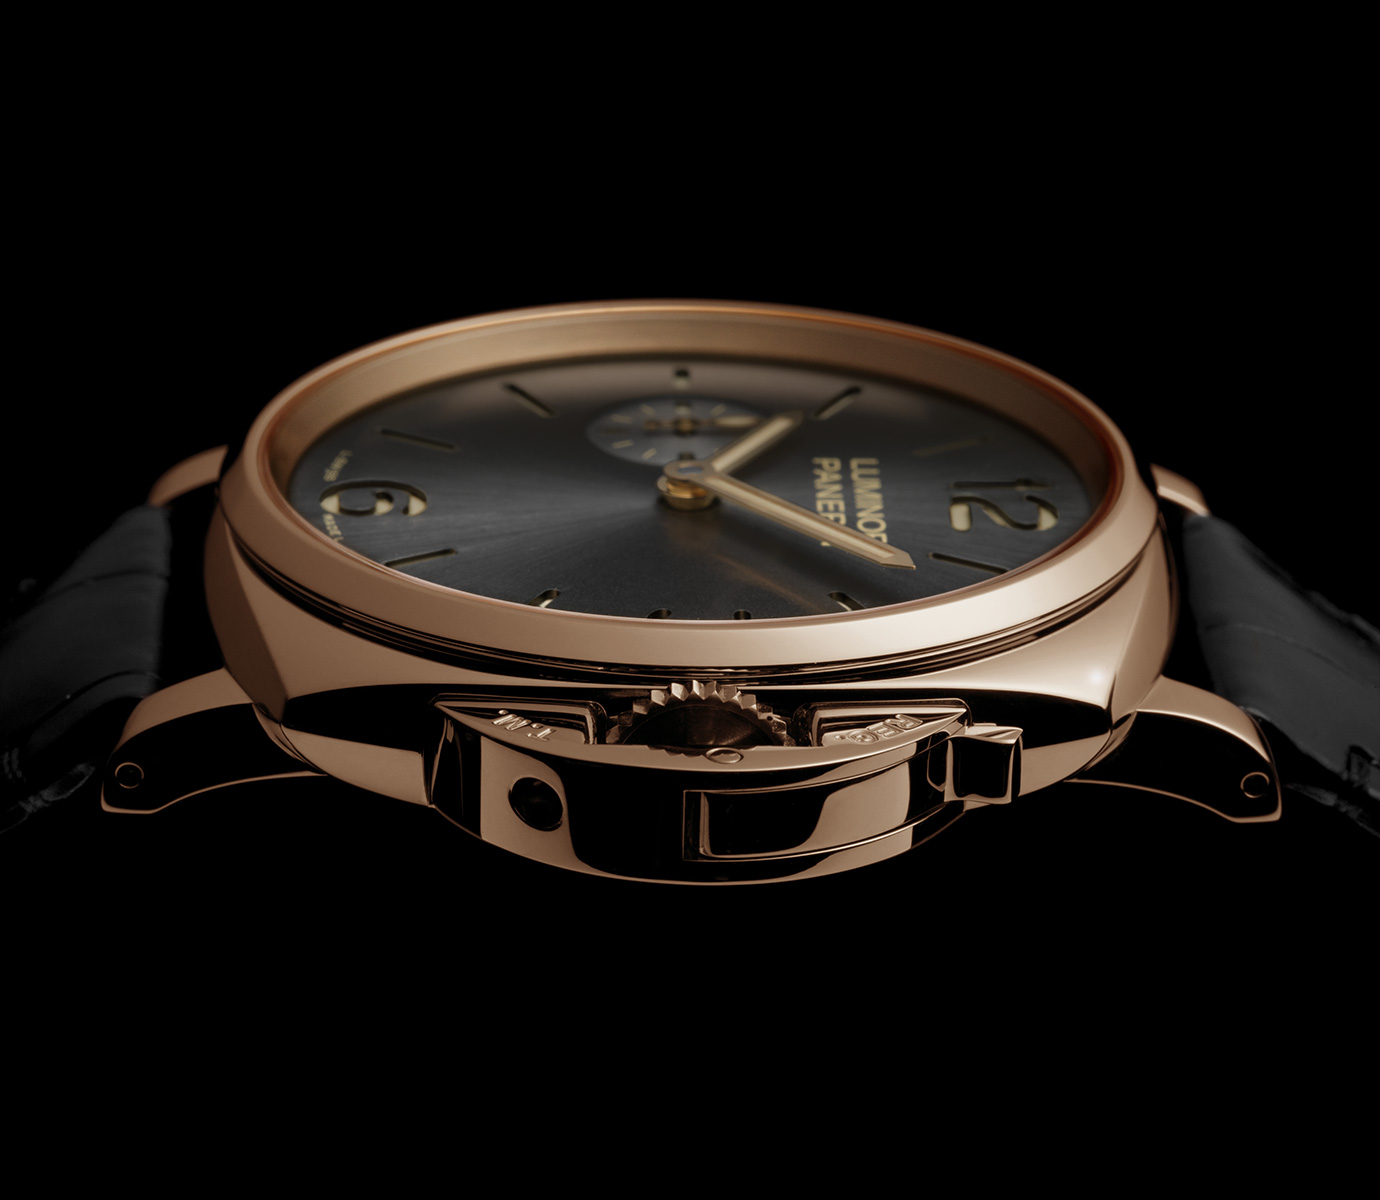 Panerai-Luminor-Due-3-Days-Oro-Rosso-42-mm-2-Horasyminutos